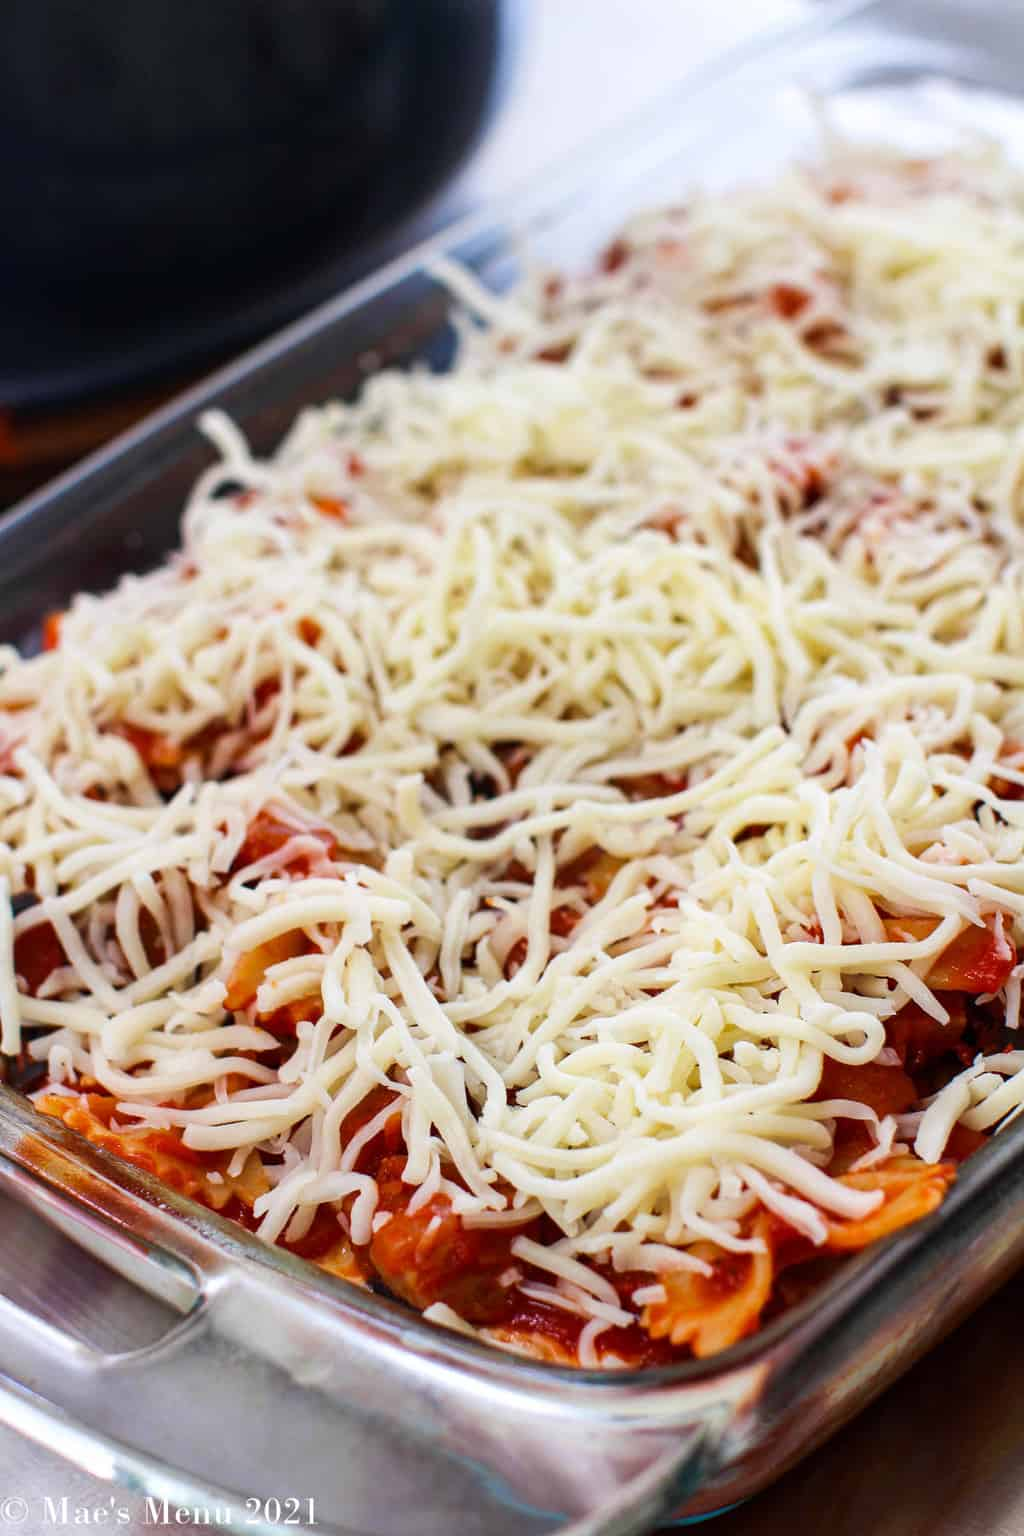 Shredded mozzarella on top of the pasta bake before going in the oven